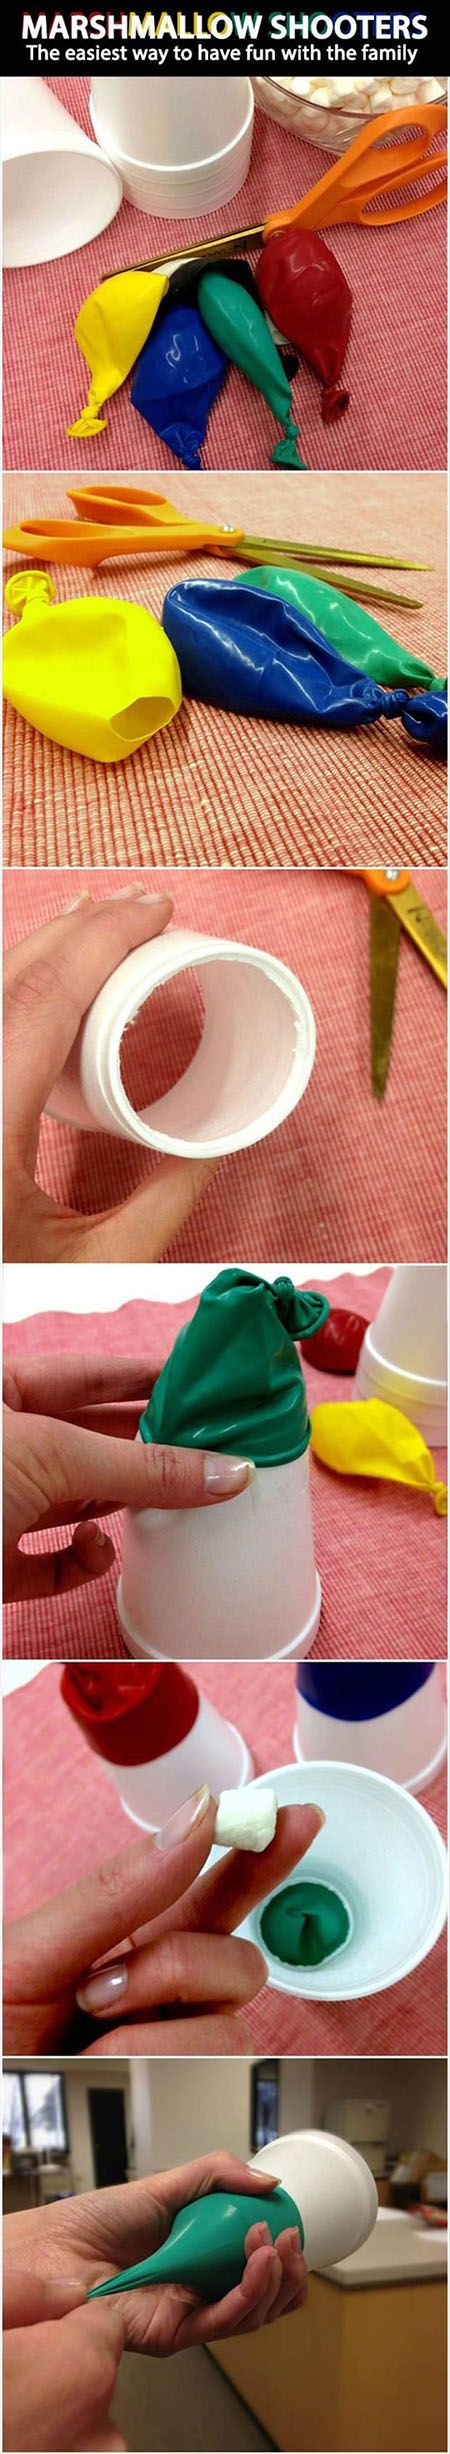 Marshmallow Shooters | DIY & Crafts Tutorials